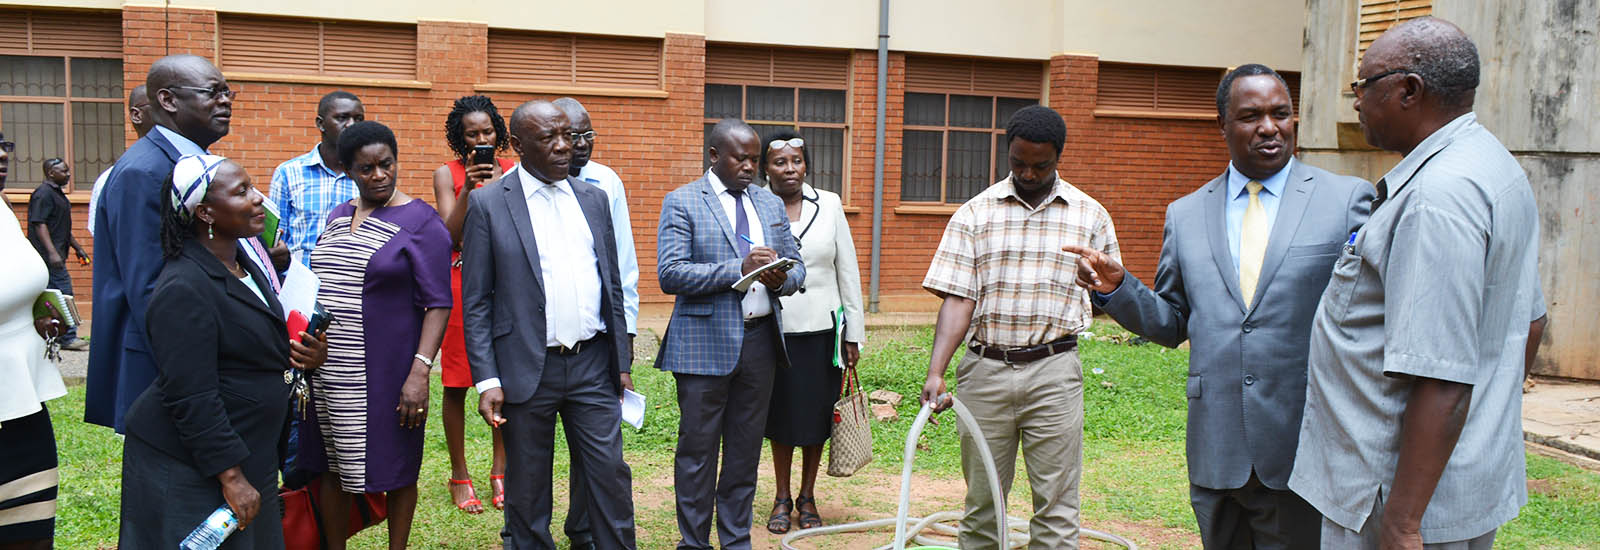 Minister commends Makerere's contribution to fighting youth unemployment